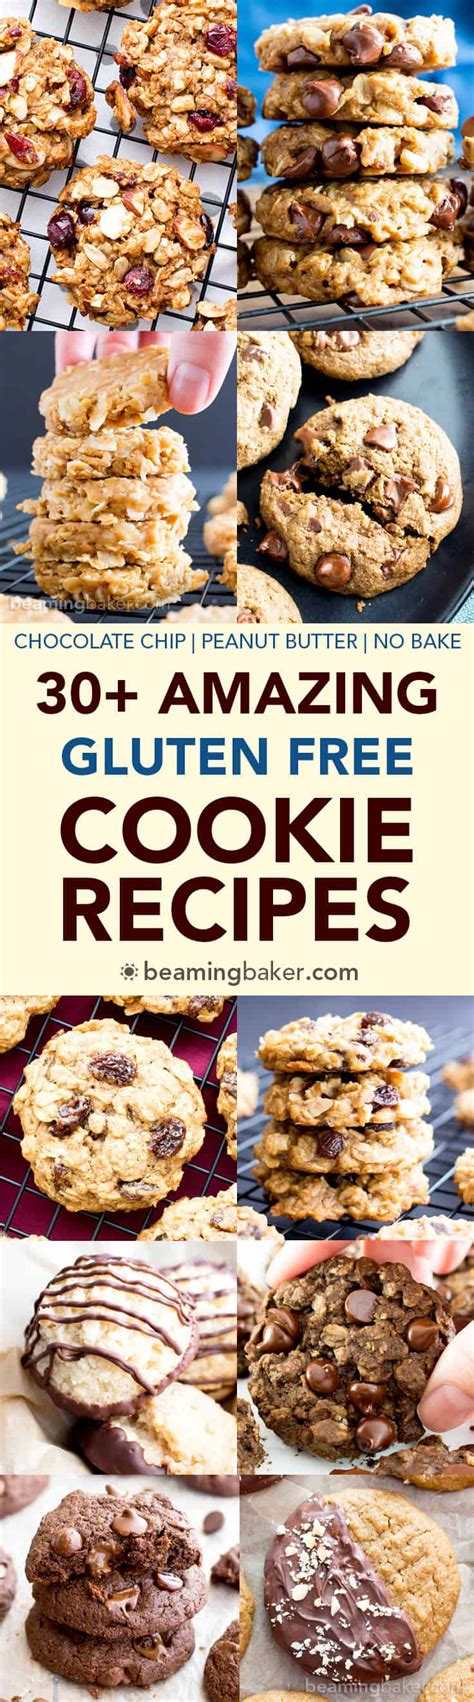 Amazing Gluten Free Blogs by 30 Amazing Gluten Free Cookie Recipes Vegan Dairy Free